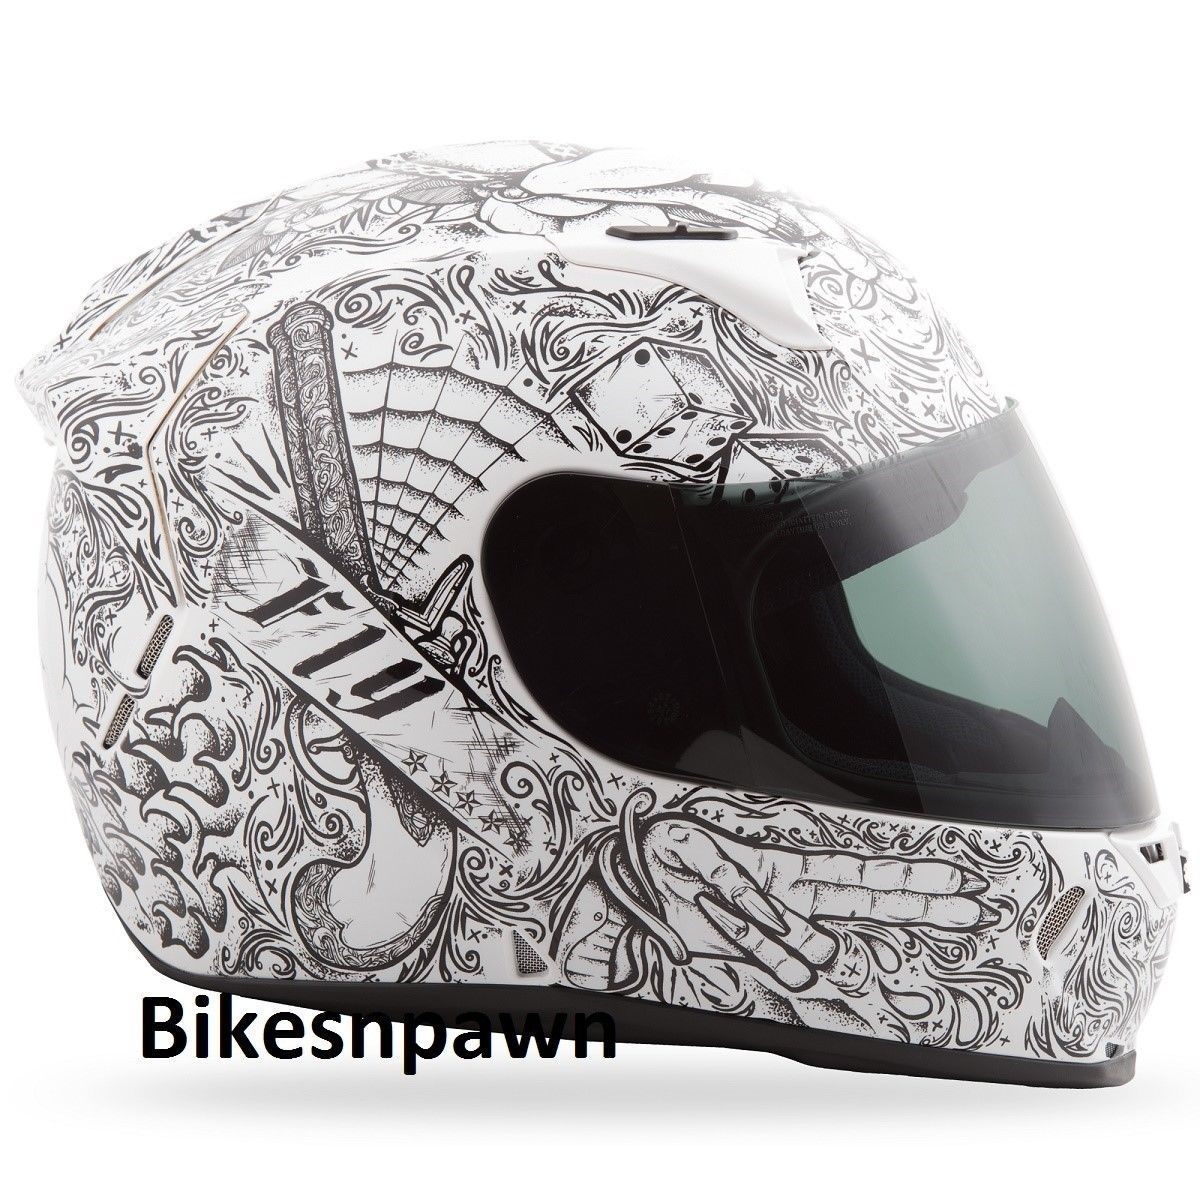 2X Fly Racing Revolt FS Motorcycle Helmet Ink & Needle White/Black DOT & Snell